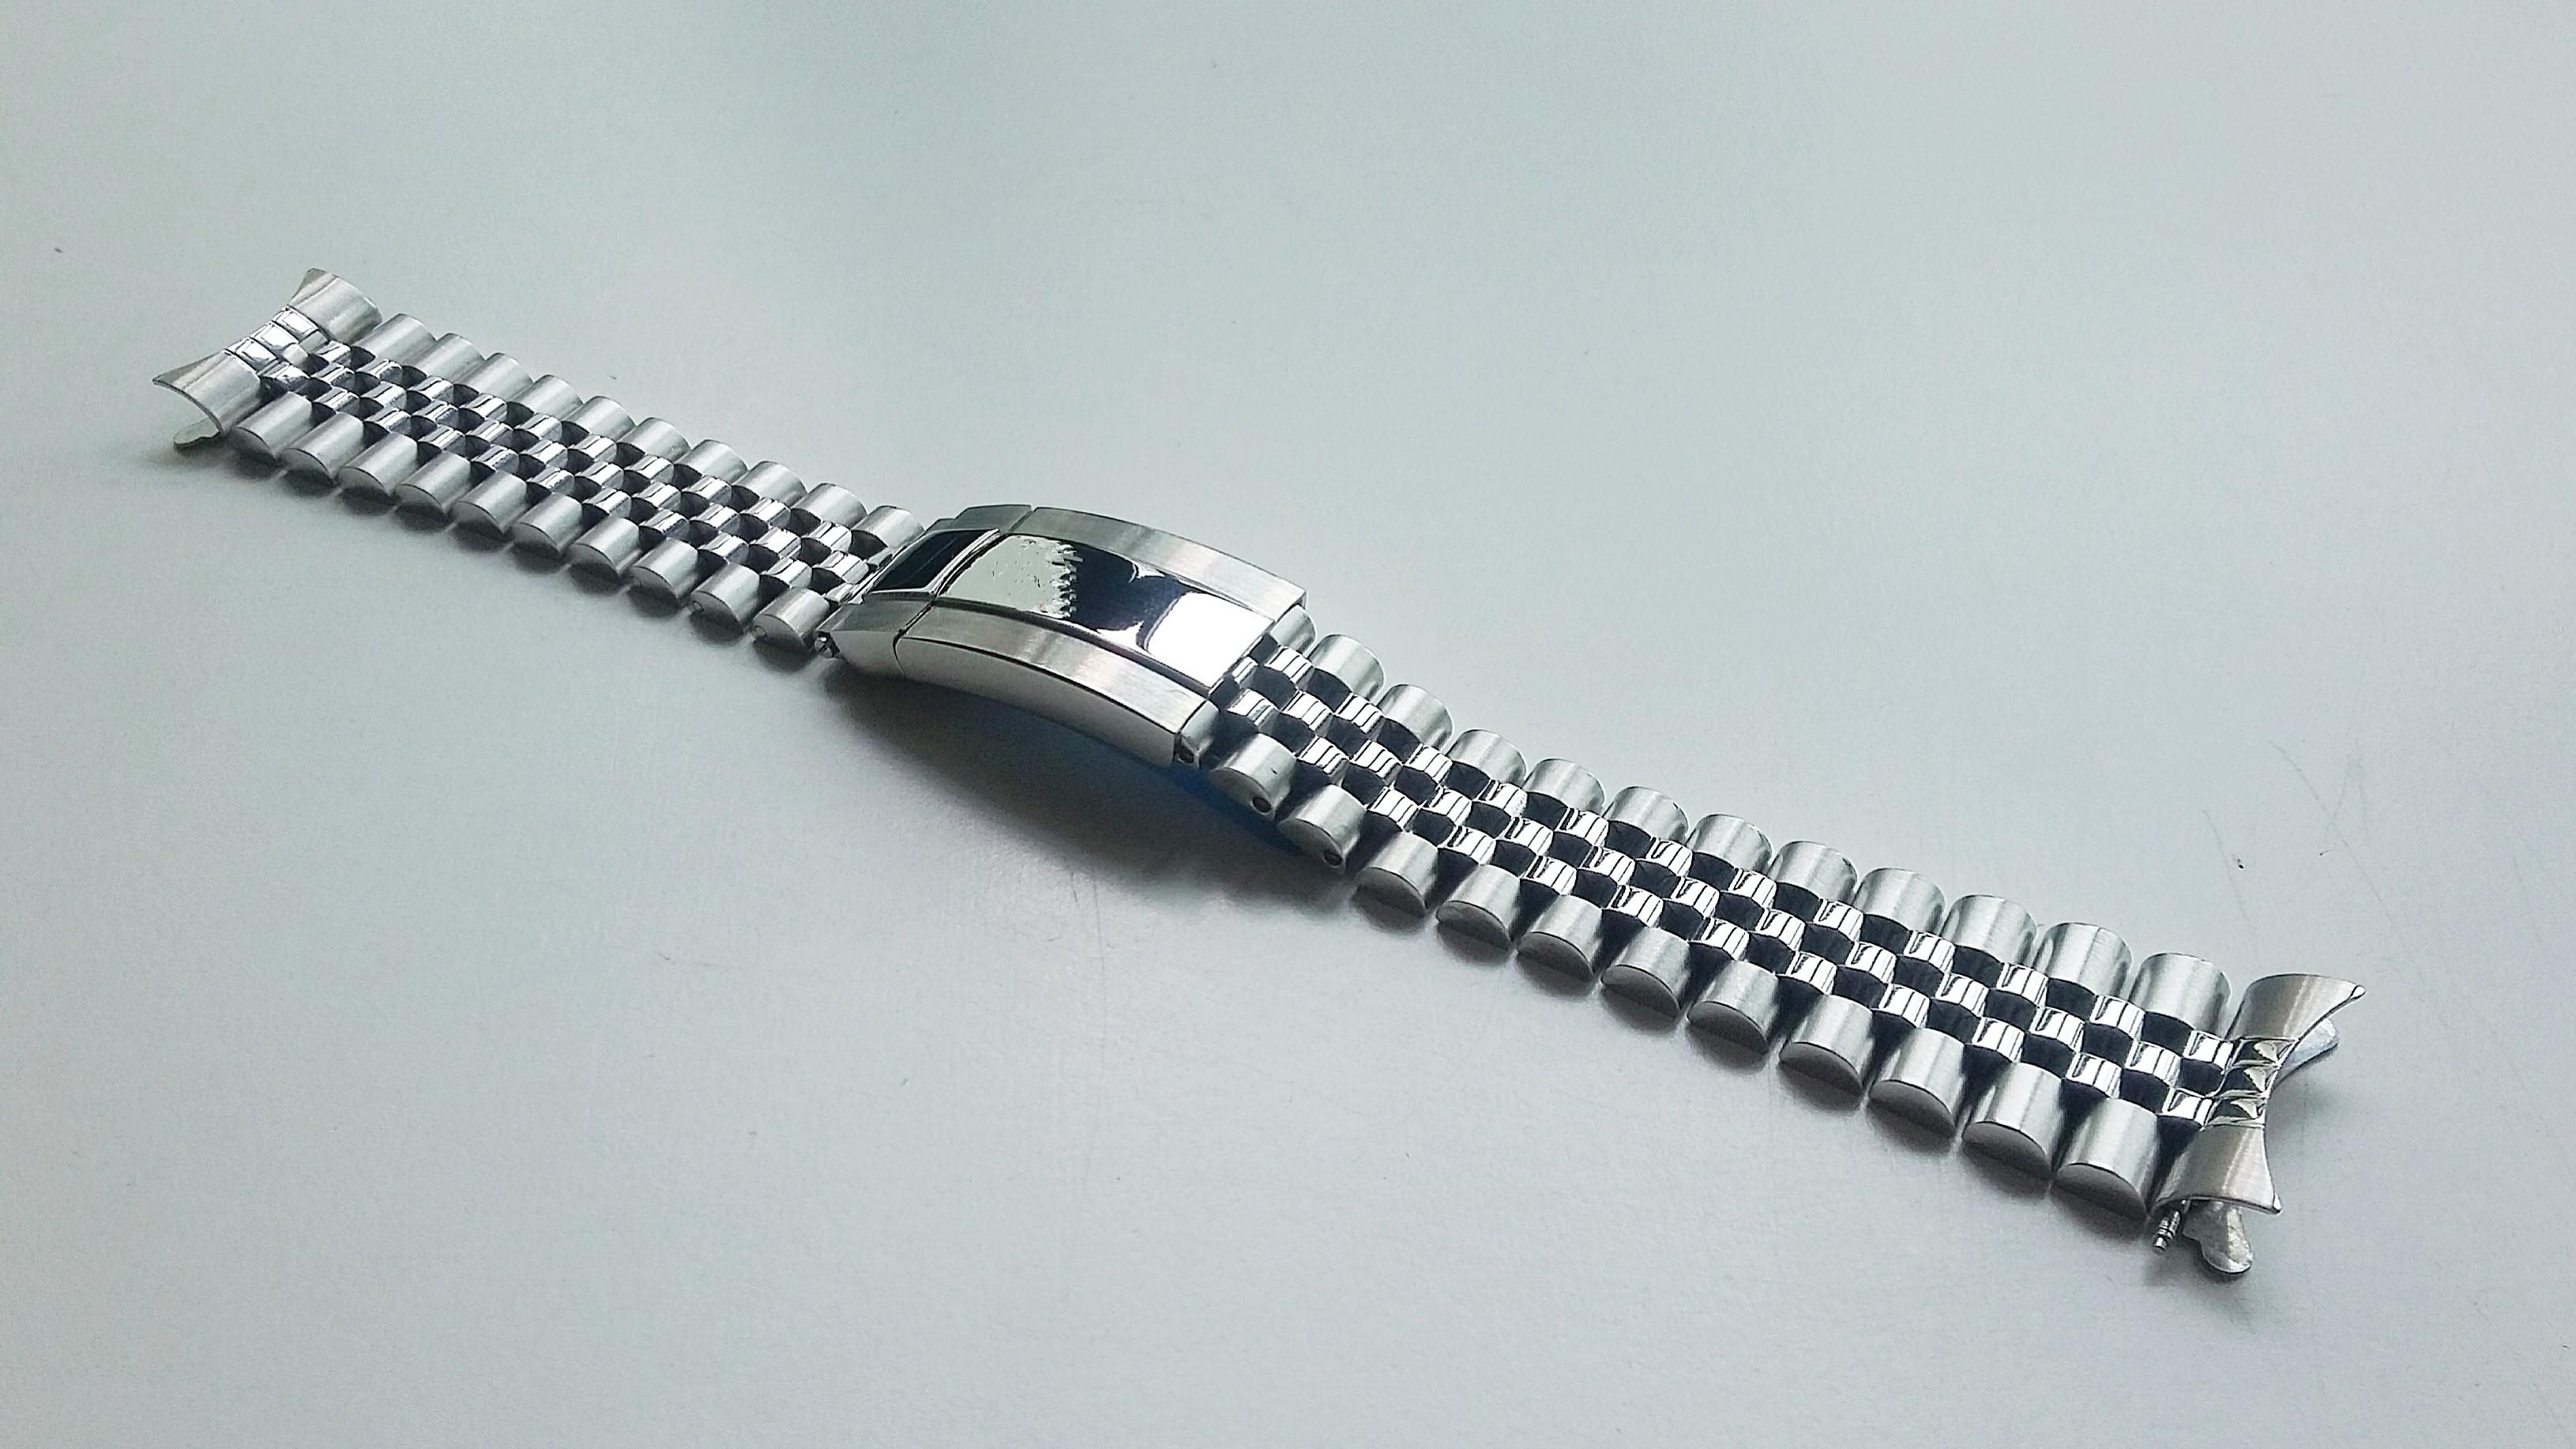 """20mm 316L STAINLESS STEEL """"AFTERMARKET"""" JUBILEE BRACELET WITH HIDDEN CLASP FOR ROLEX DAYTONA (PRICE INCLUSIVE OF FITMENT)"""